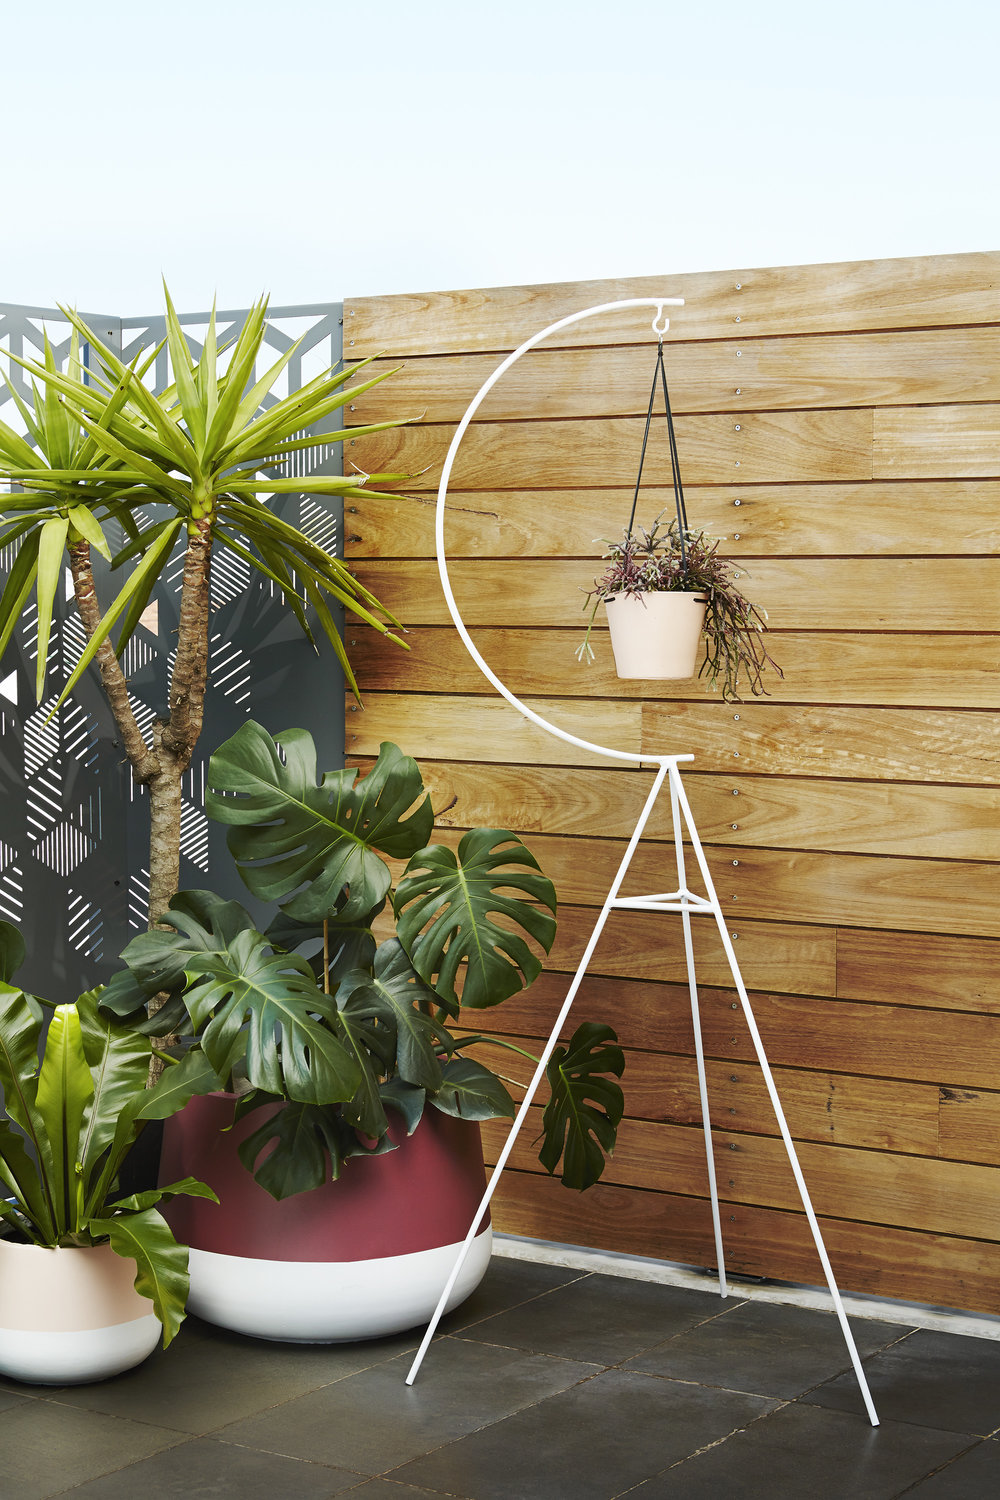 """We have numerous potted plants inside and out to extend a garden-like feel in our dense urban landscape,"" explains Nicola. Luum 'Cup' pots and Capra Designs 'Crescent' plant stand pictured."